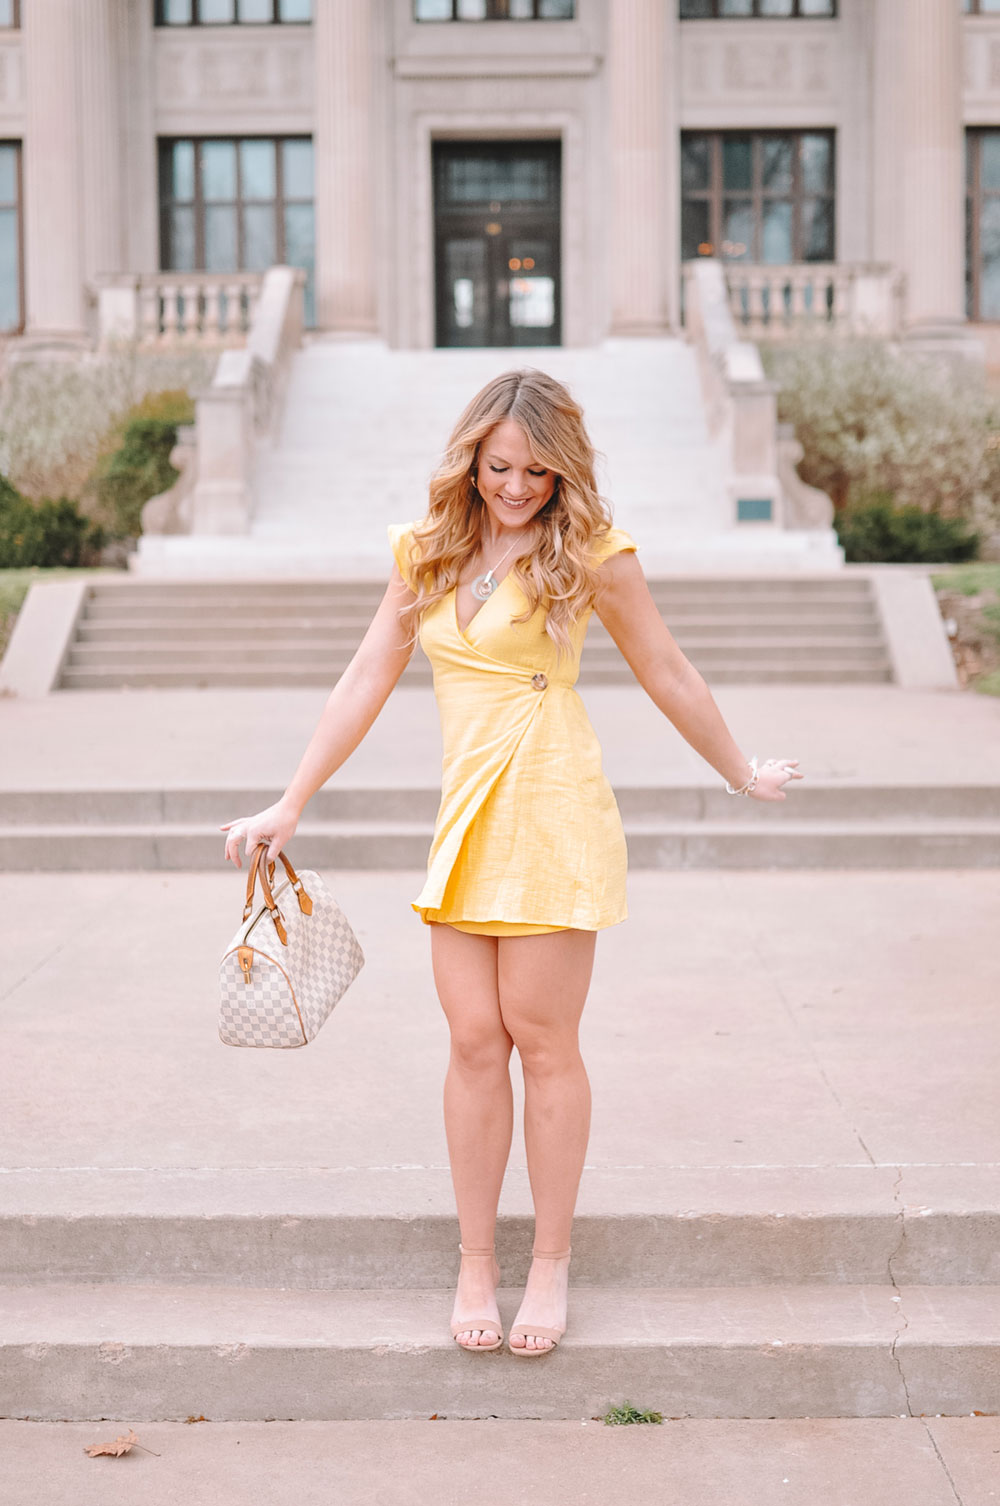 Amanda Martin of OKC blog Amanda's OK wears a yellow wrap dress with flutter sleeves for her Easter dress